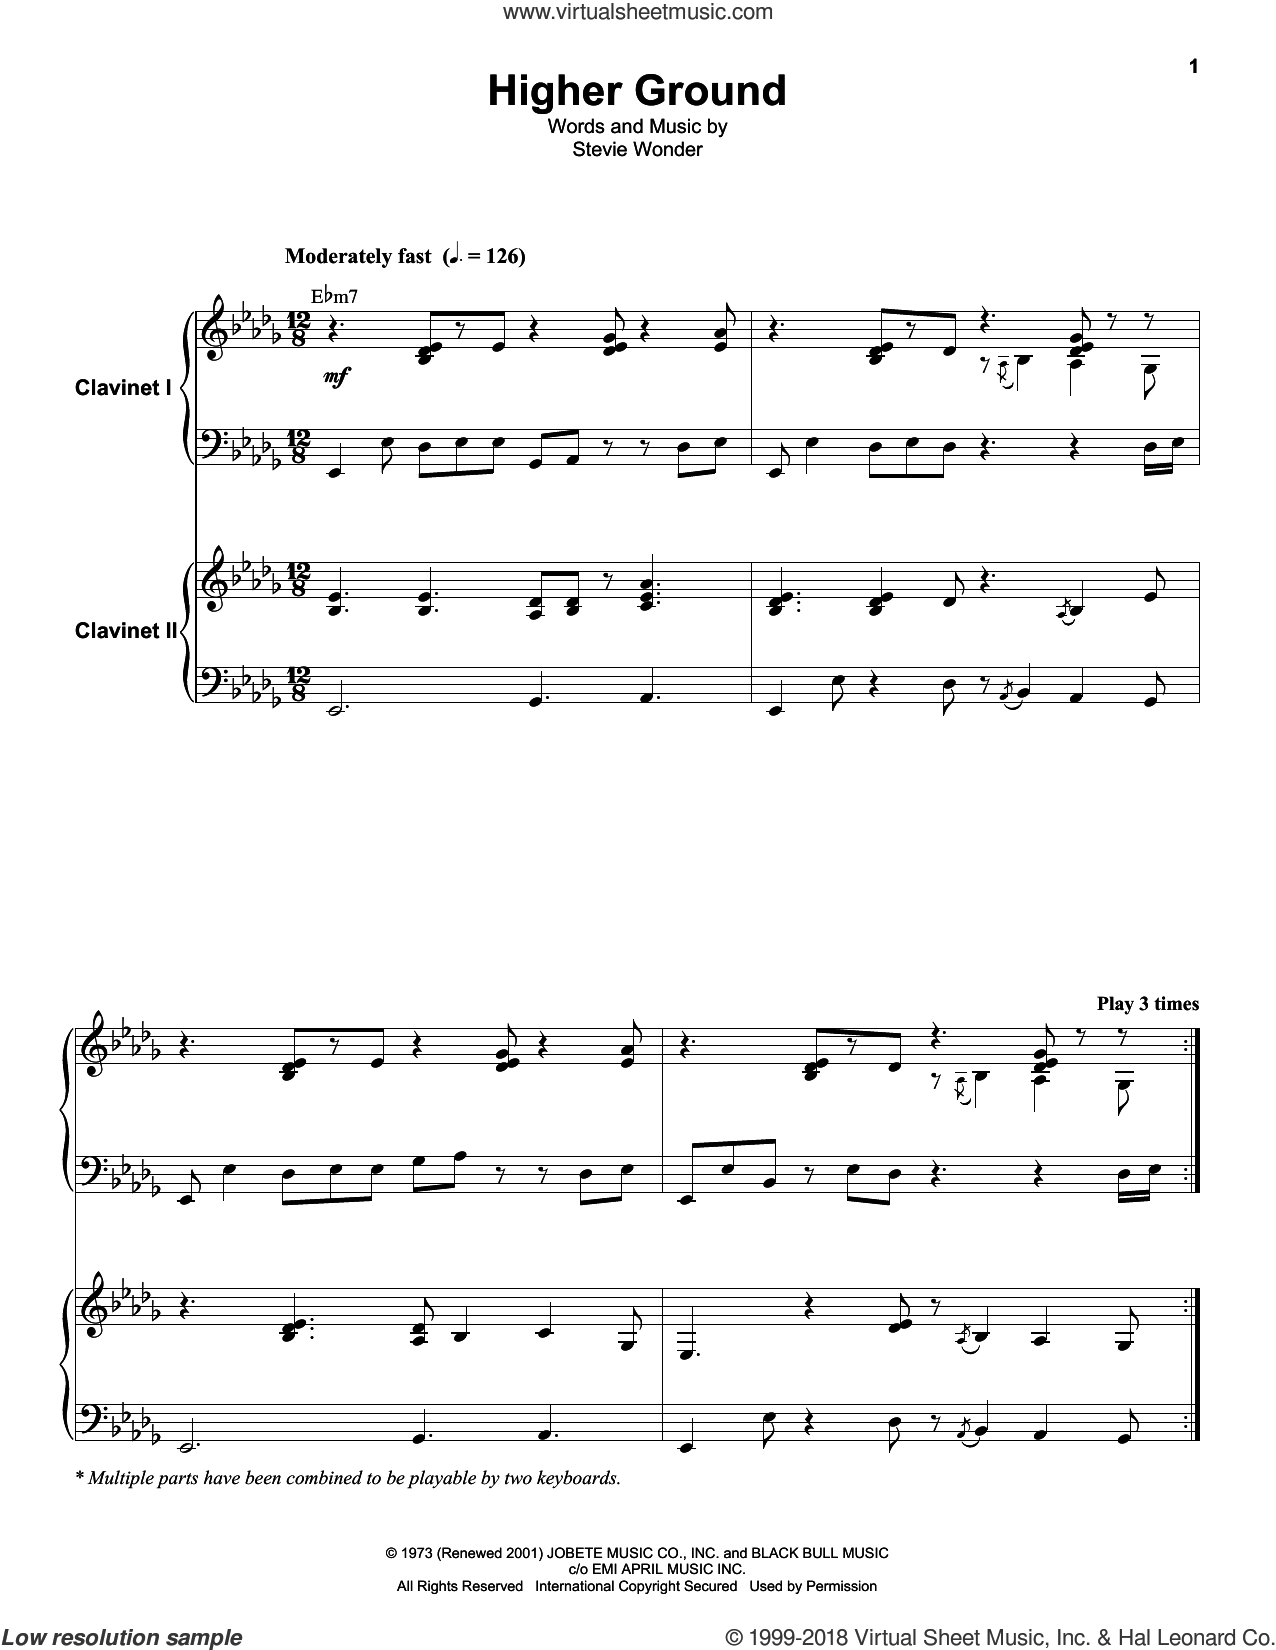 Higher Ground sheet music for keyboard or piano by Stevie Wonder, intermediate skill level